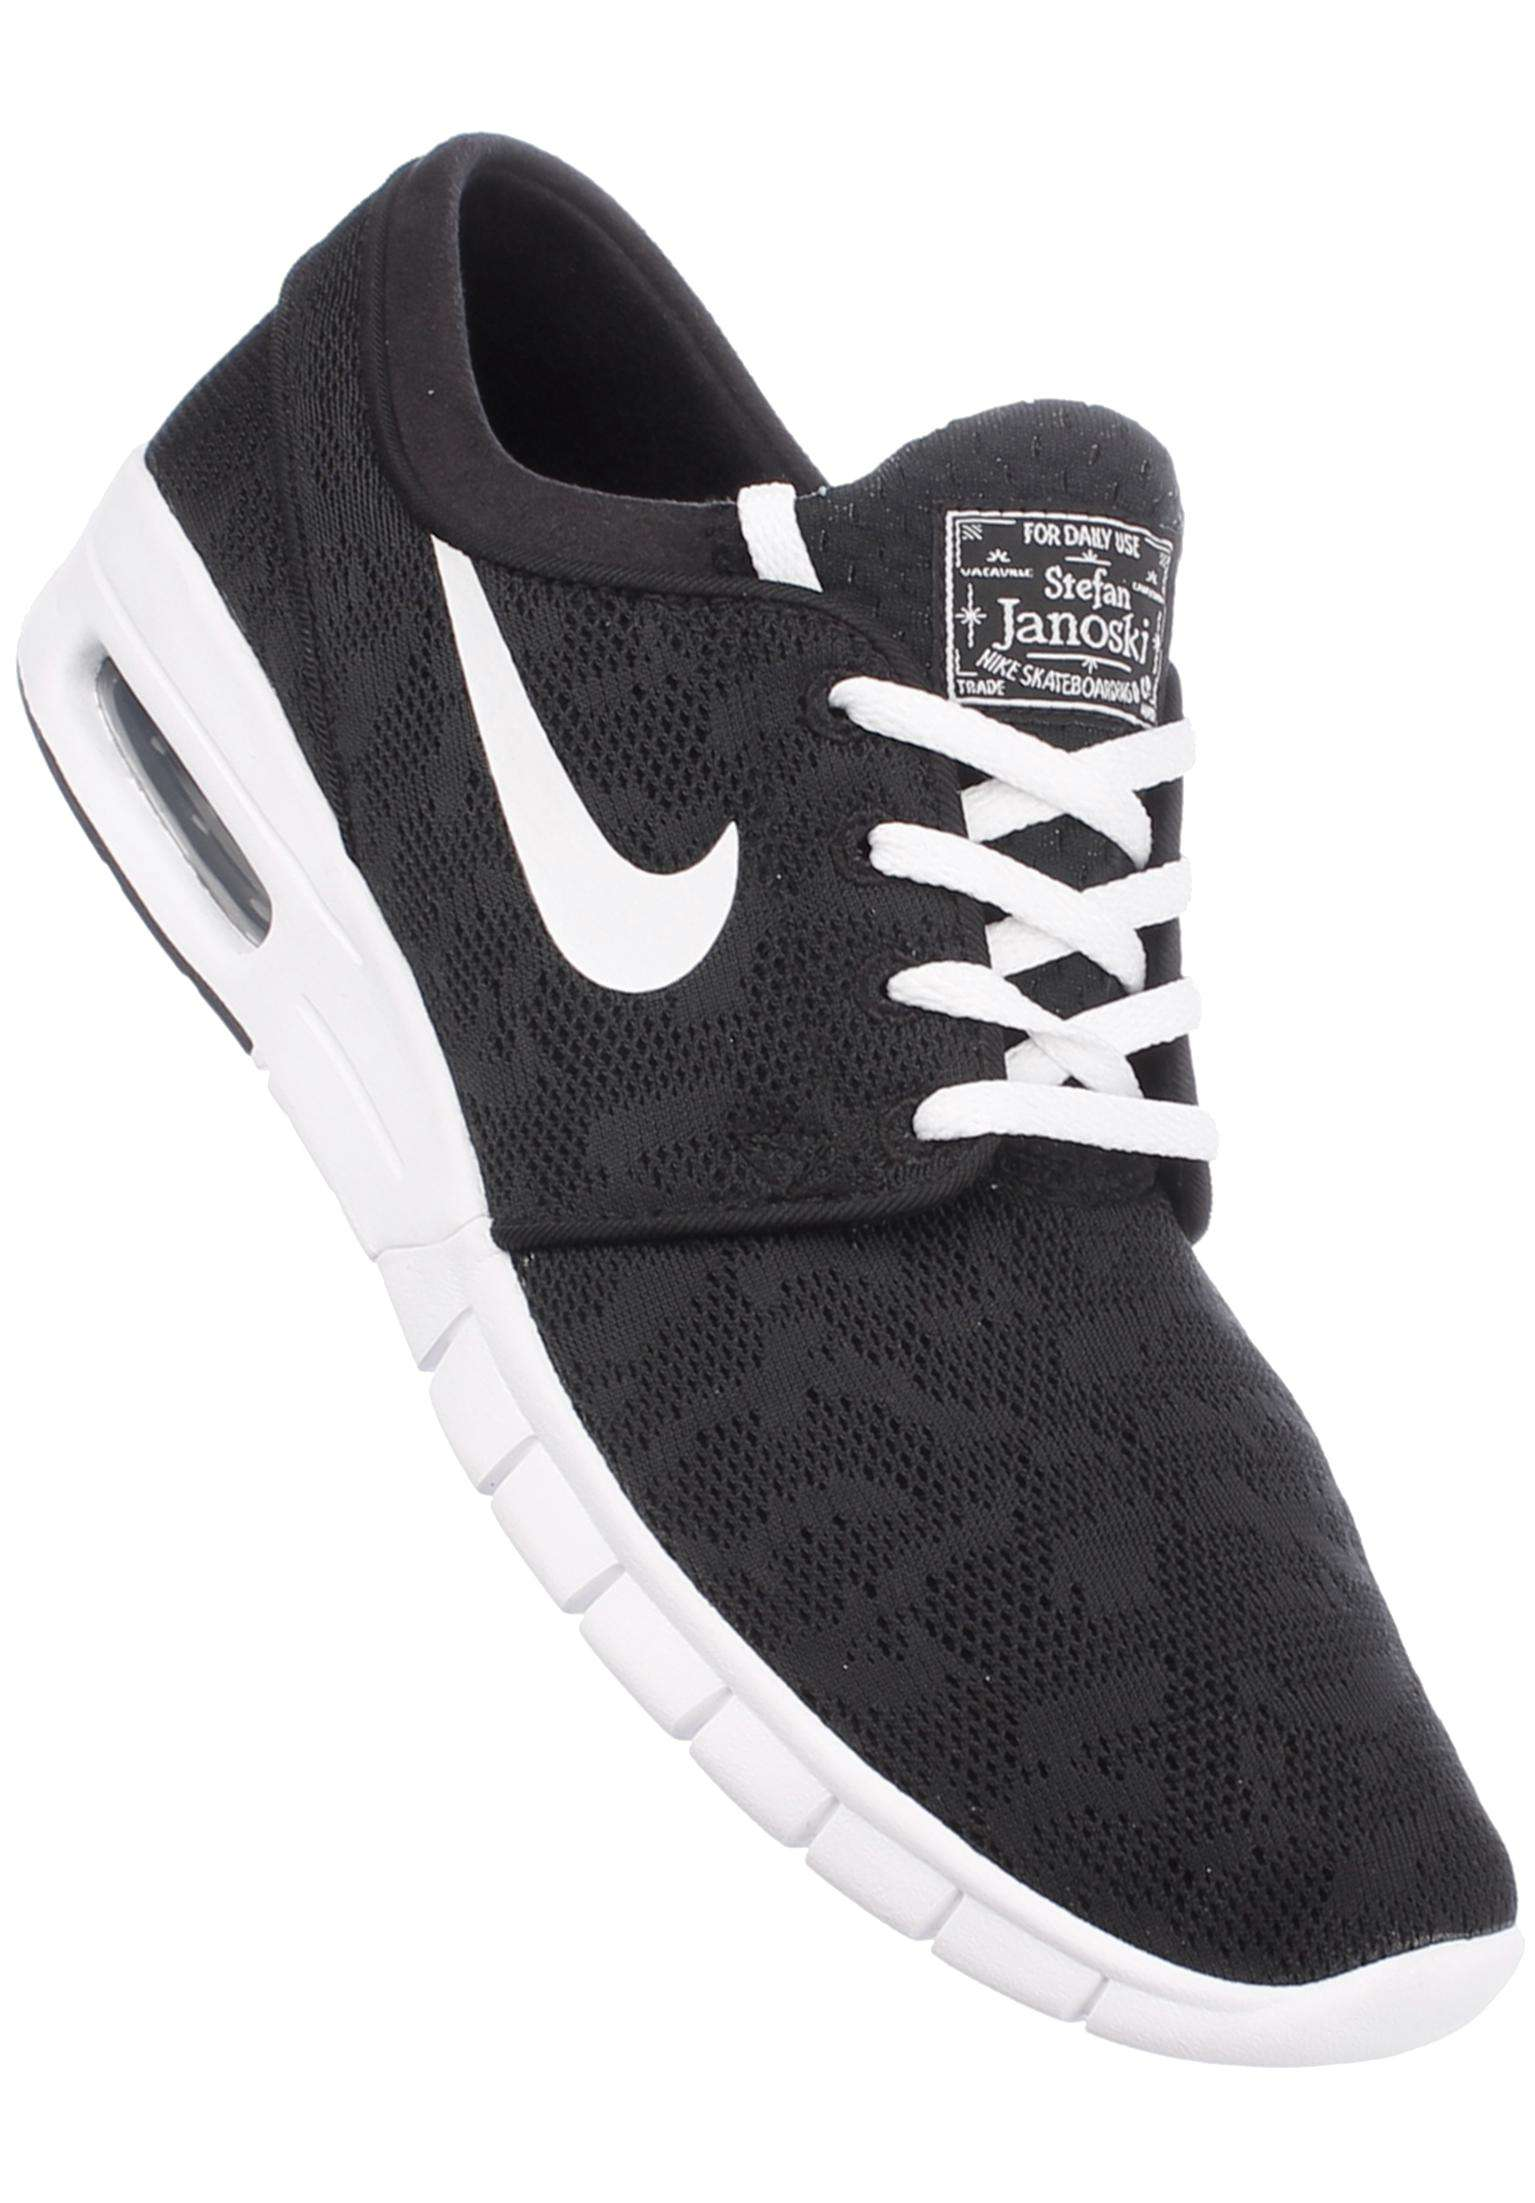 0d806e676c Stefan Janoski Max Nike SB All Shoes in black-white for Men | Titus